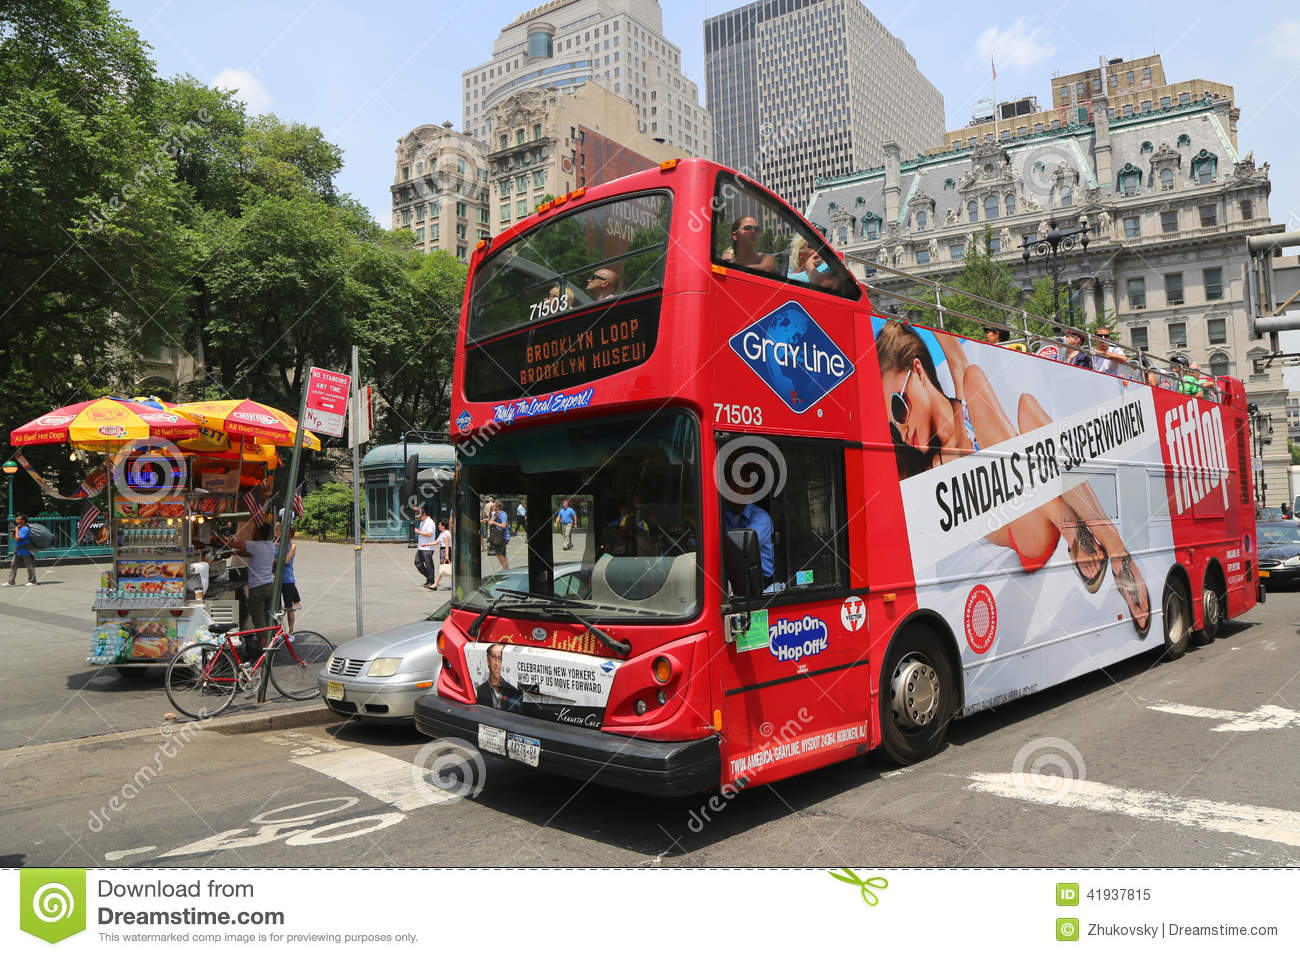 Gray line tours nyc coupons